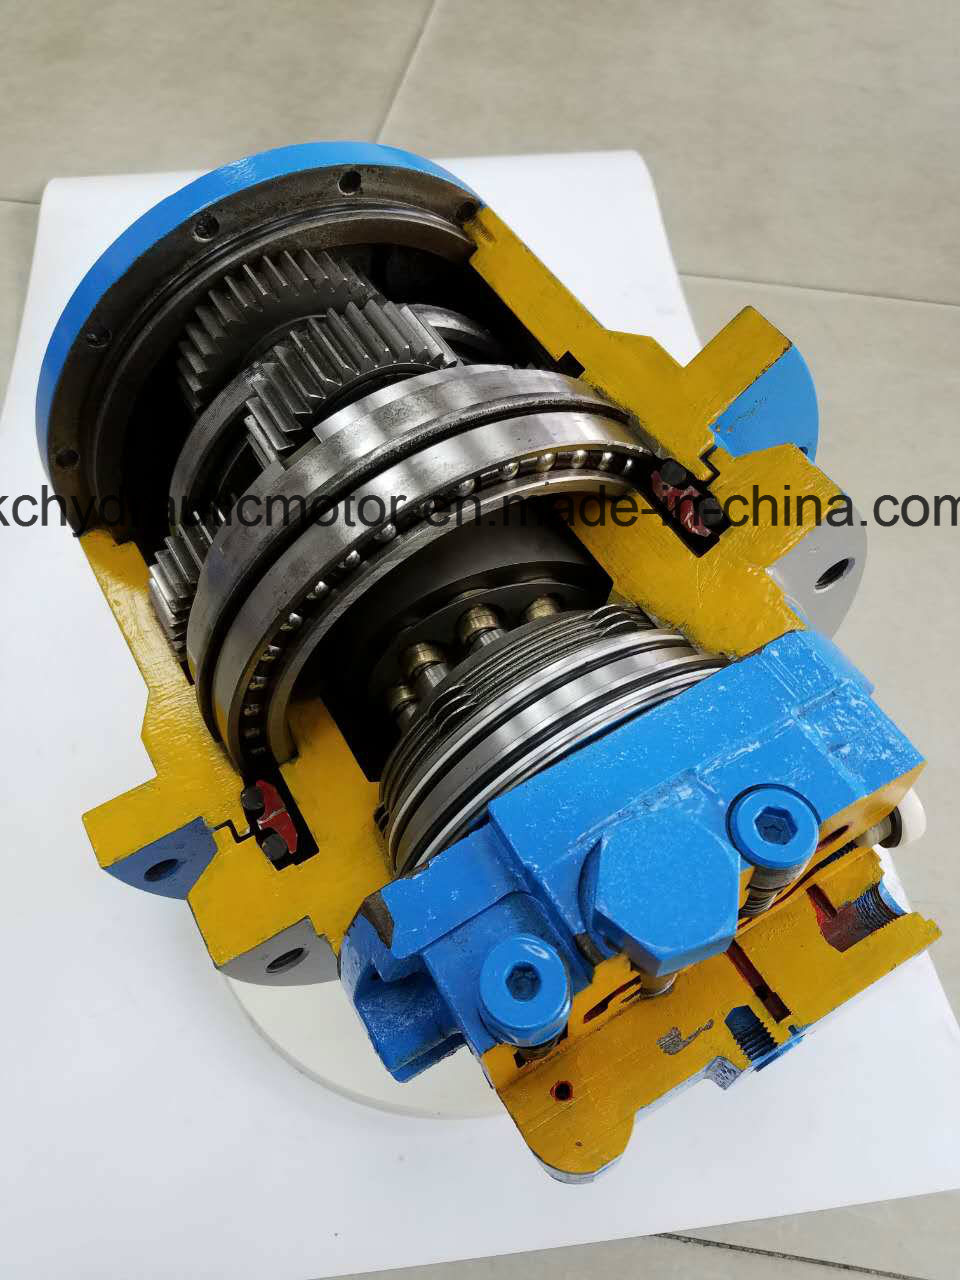 Excavator Spare Parts for 12t~16t Caterpillar Crawler Machinery